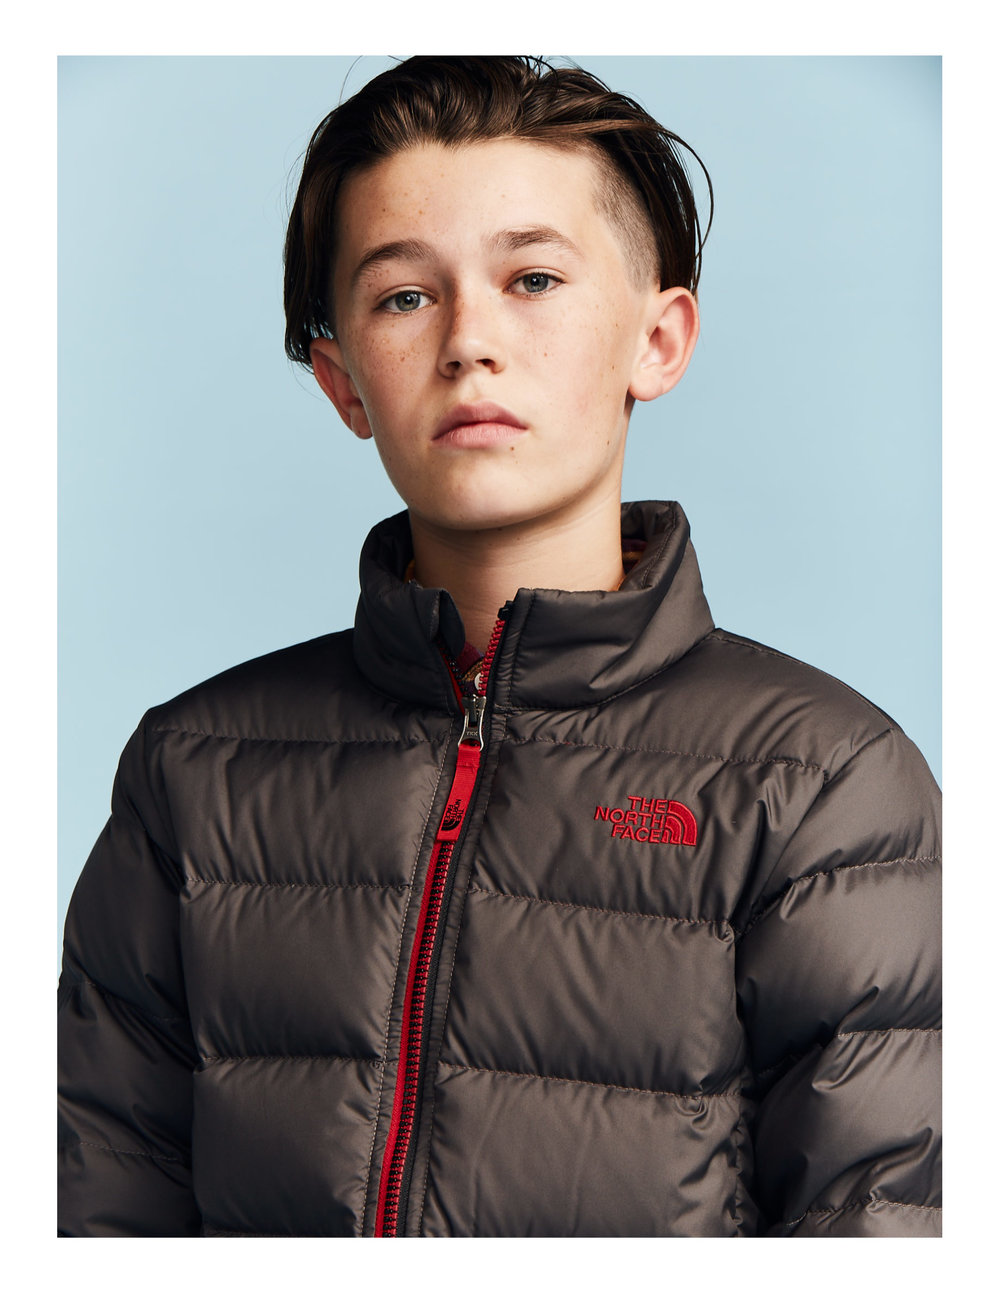 Kids fashion Photographer VIKA POBEDA | The North Face |